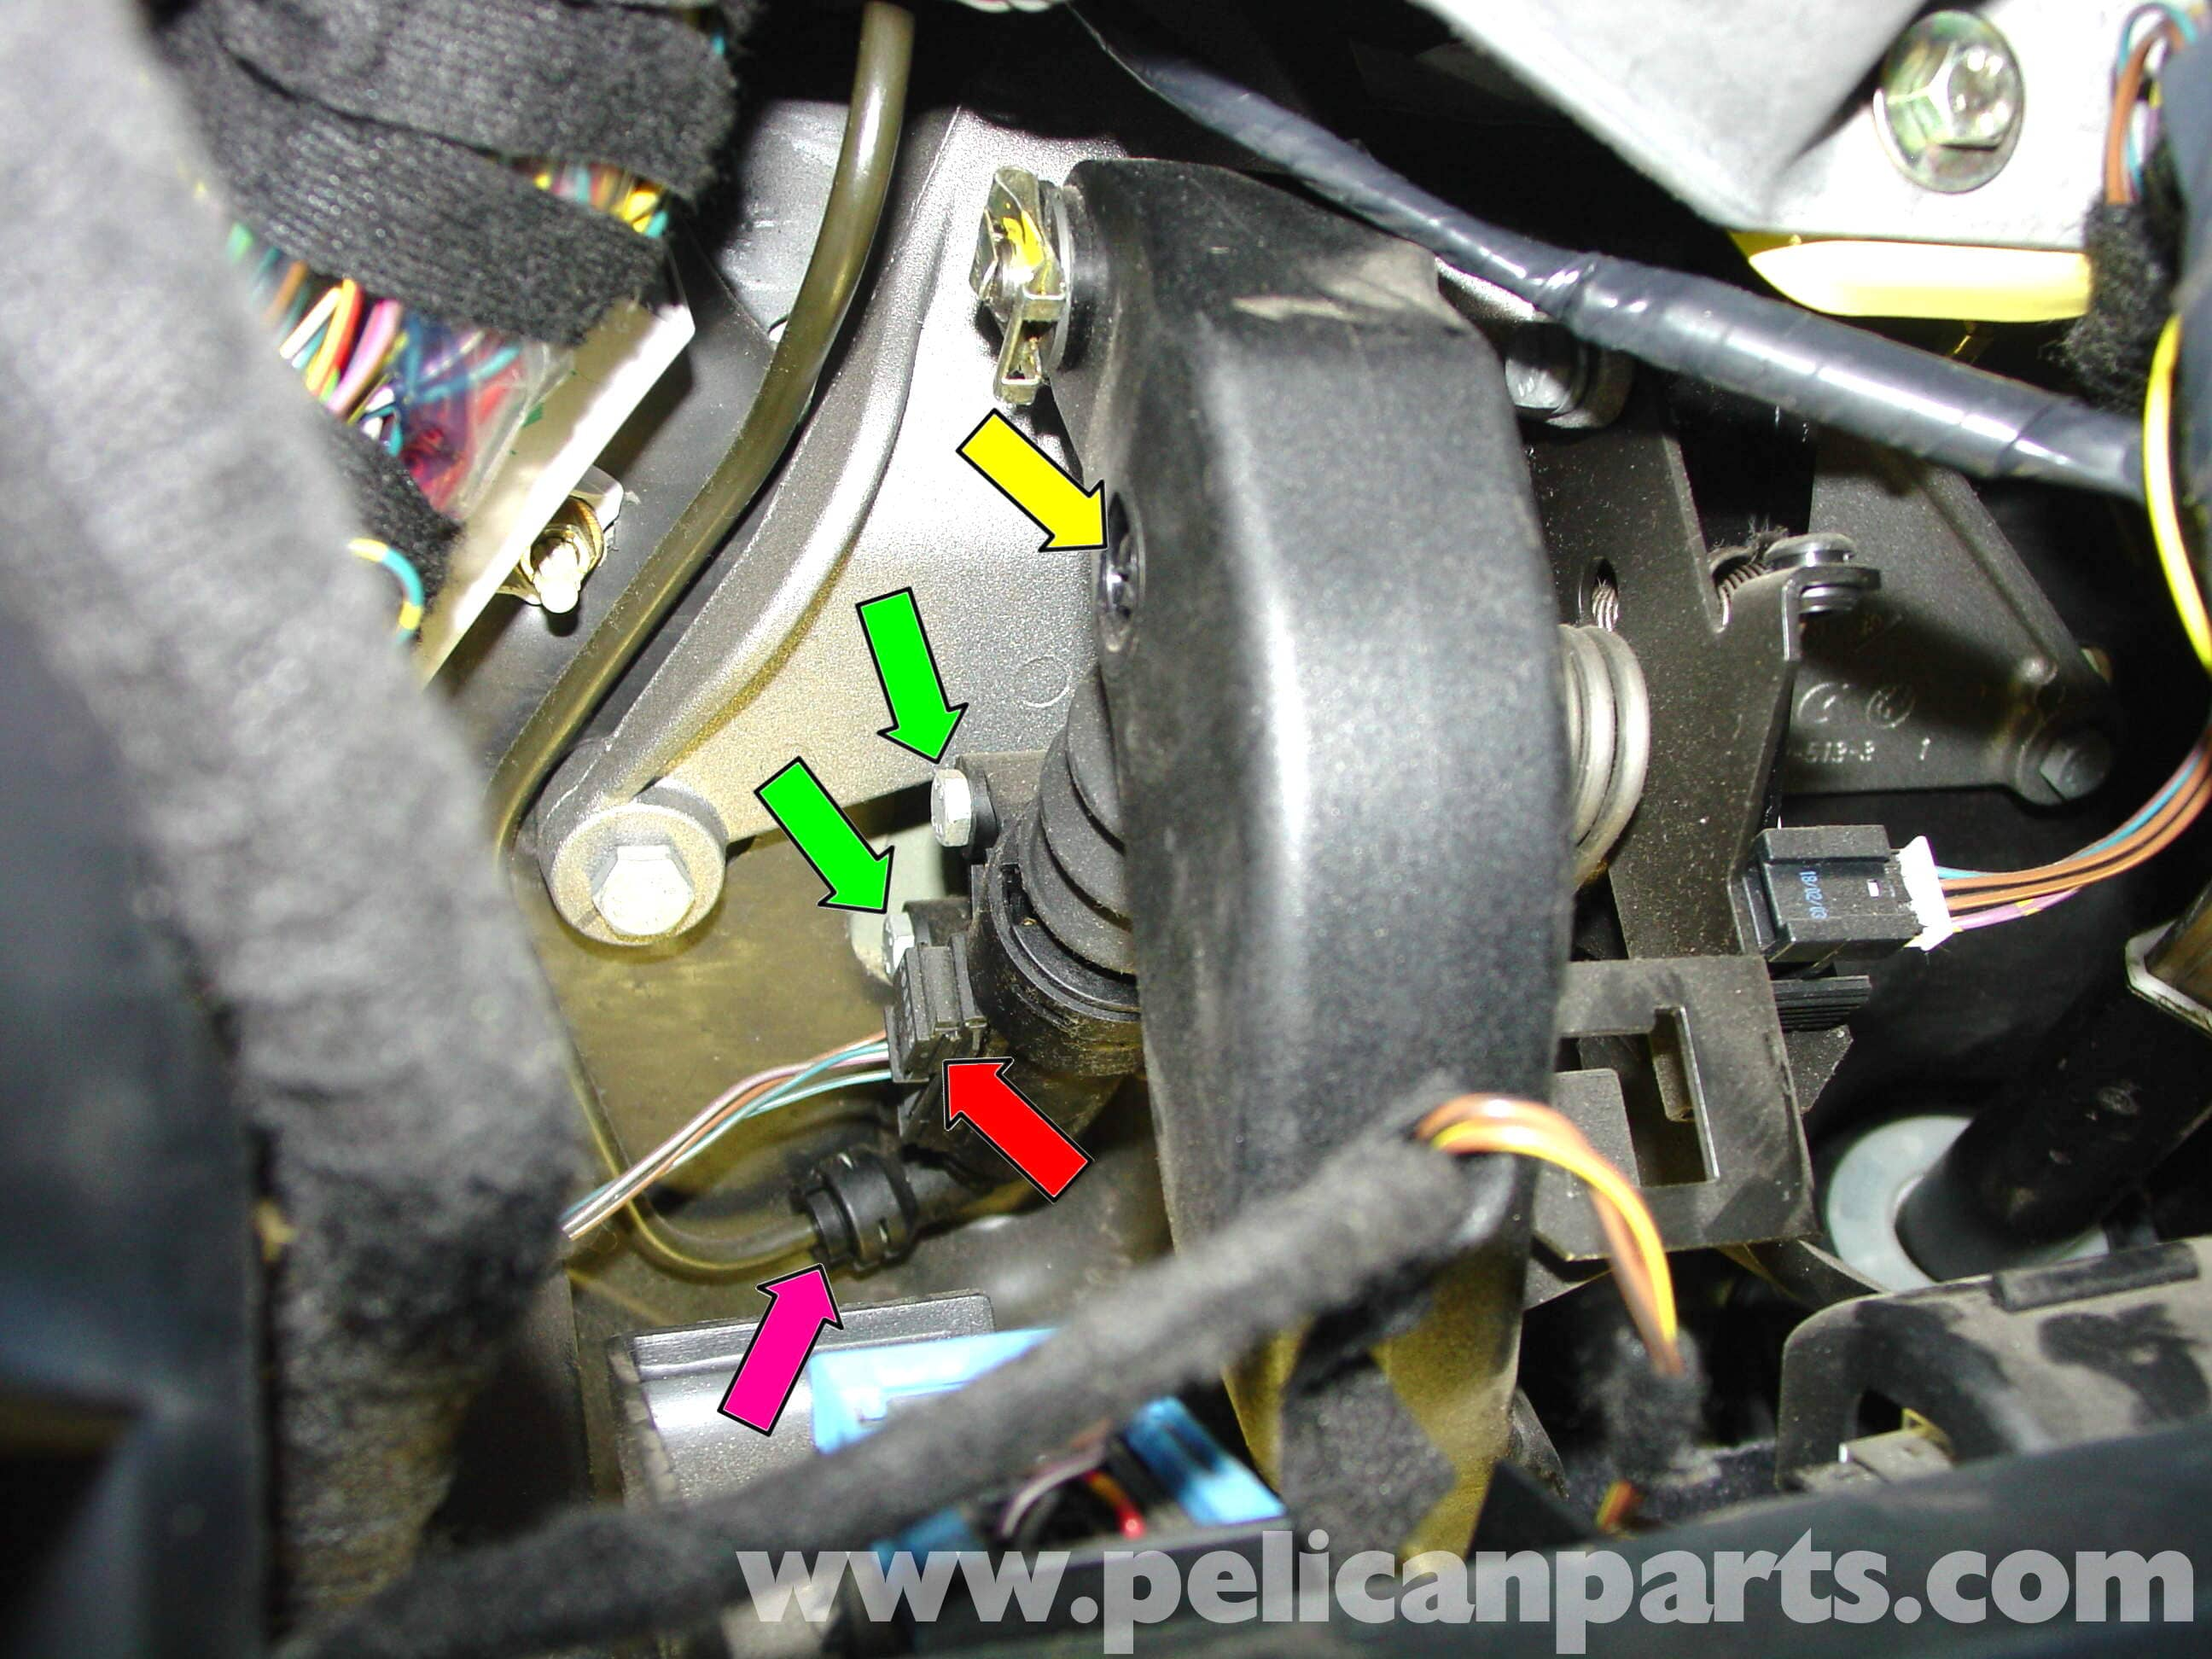 Wiring Diagram 2006 Mini Cooper Clutch Master And Slave Cylinder Replacement R50 R52 Large Image Extra